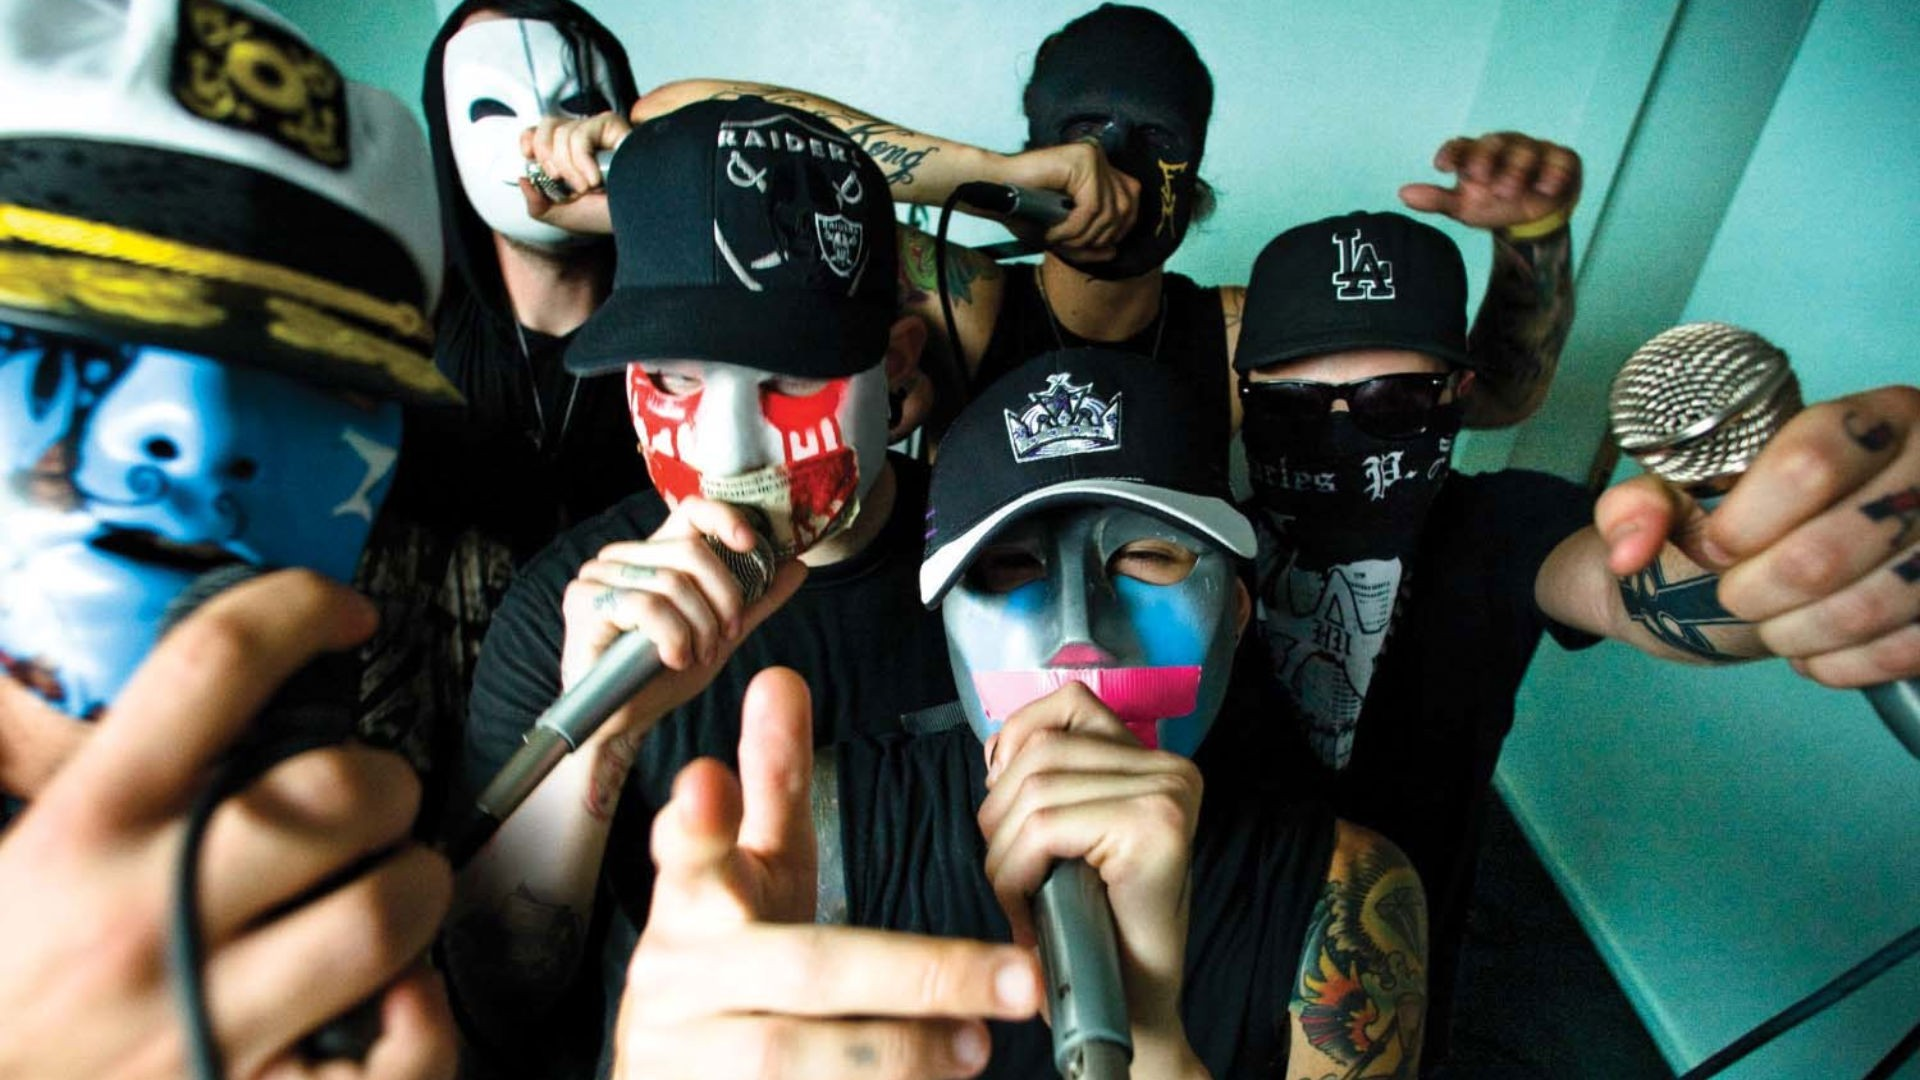 1920x1080 Wallpaper for Iphone: Hollywood Undead